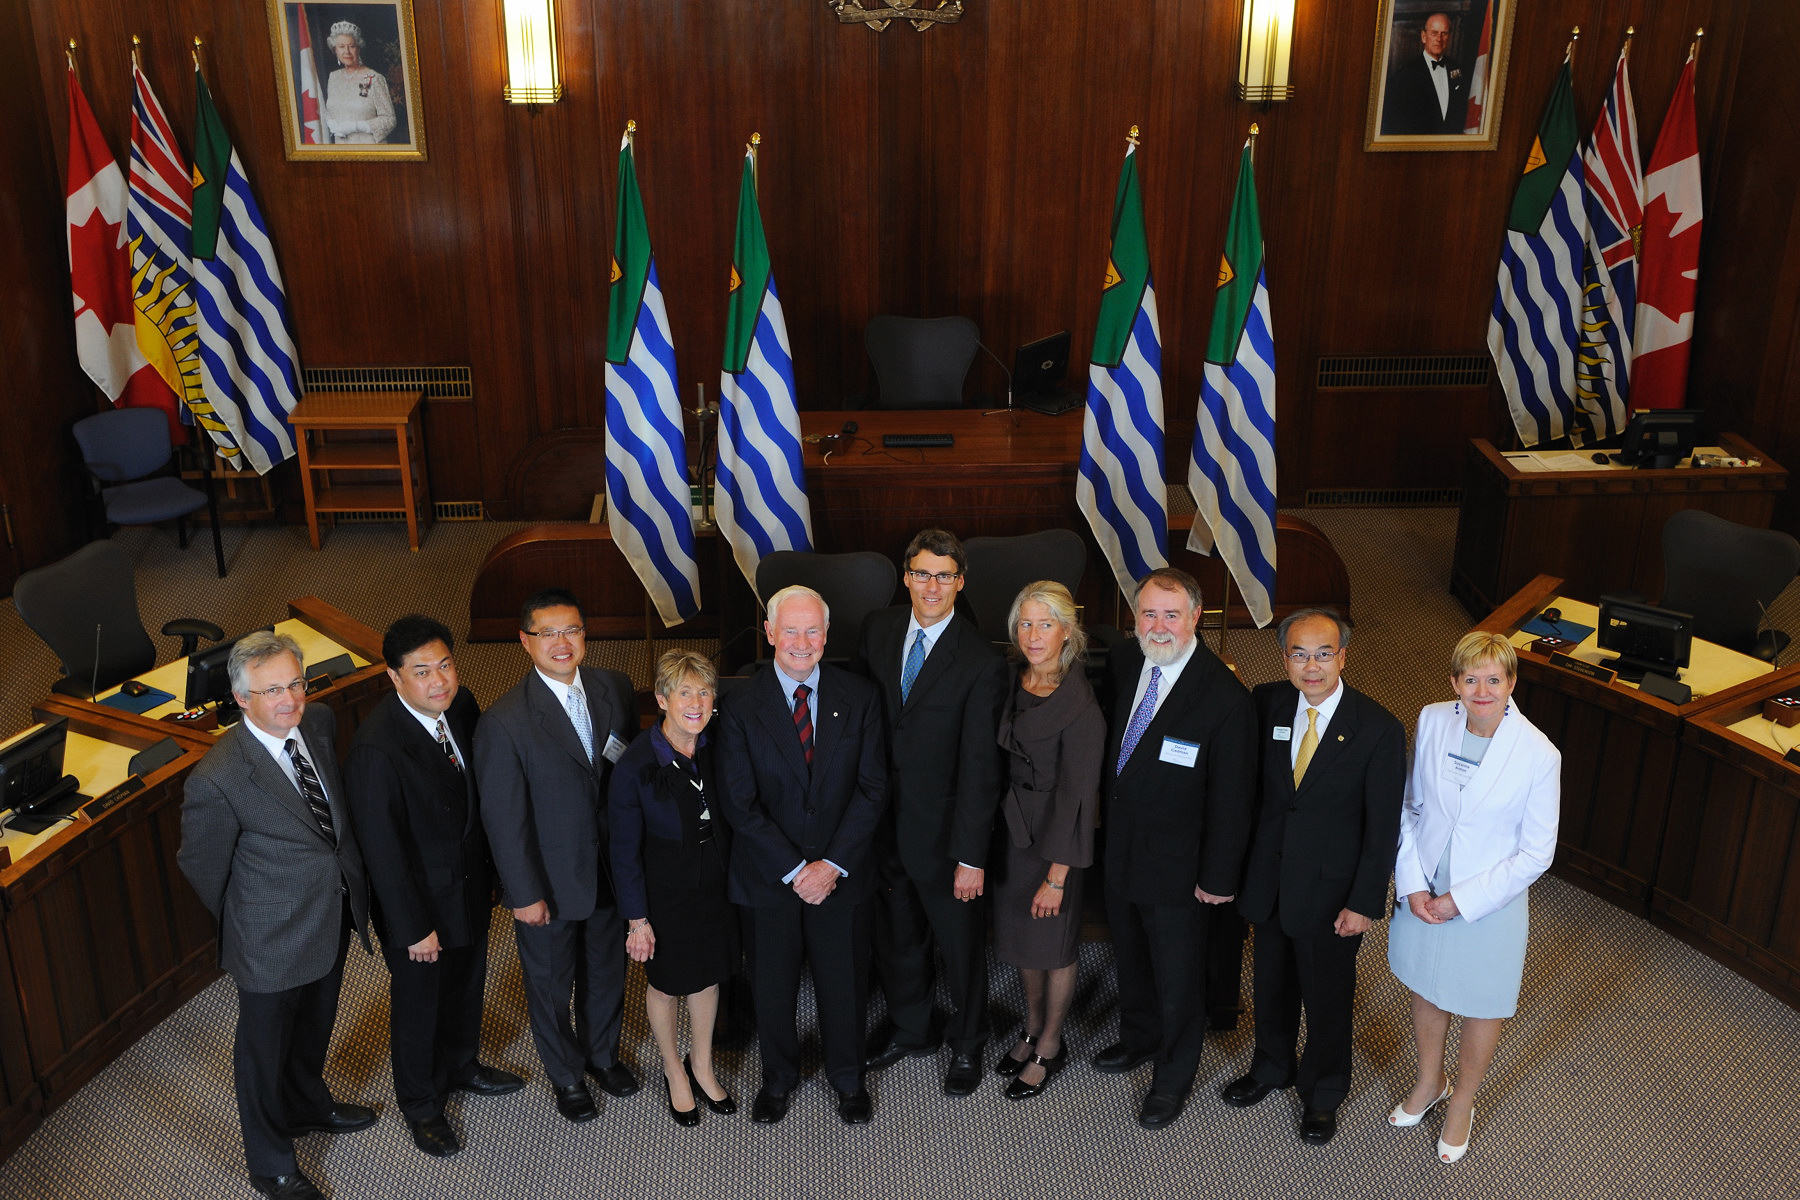 During the visit to Vancouver City Hall, Their Excellencies met with city officials to learn about the city's innovative programs promoting cultural integration and anti-racism leadership in youth. Their Excellencies also learned about Vancouver's initiatives as one of Canada's greenest cities.